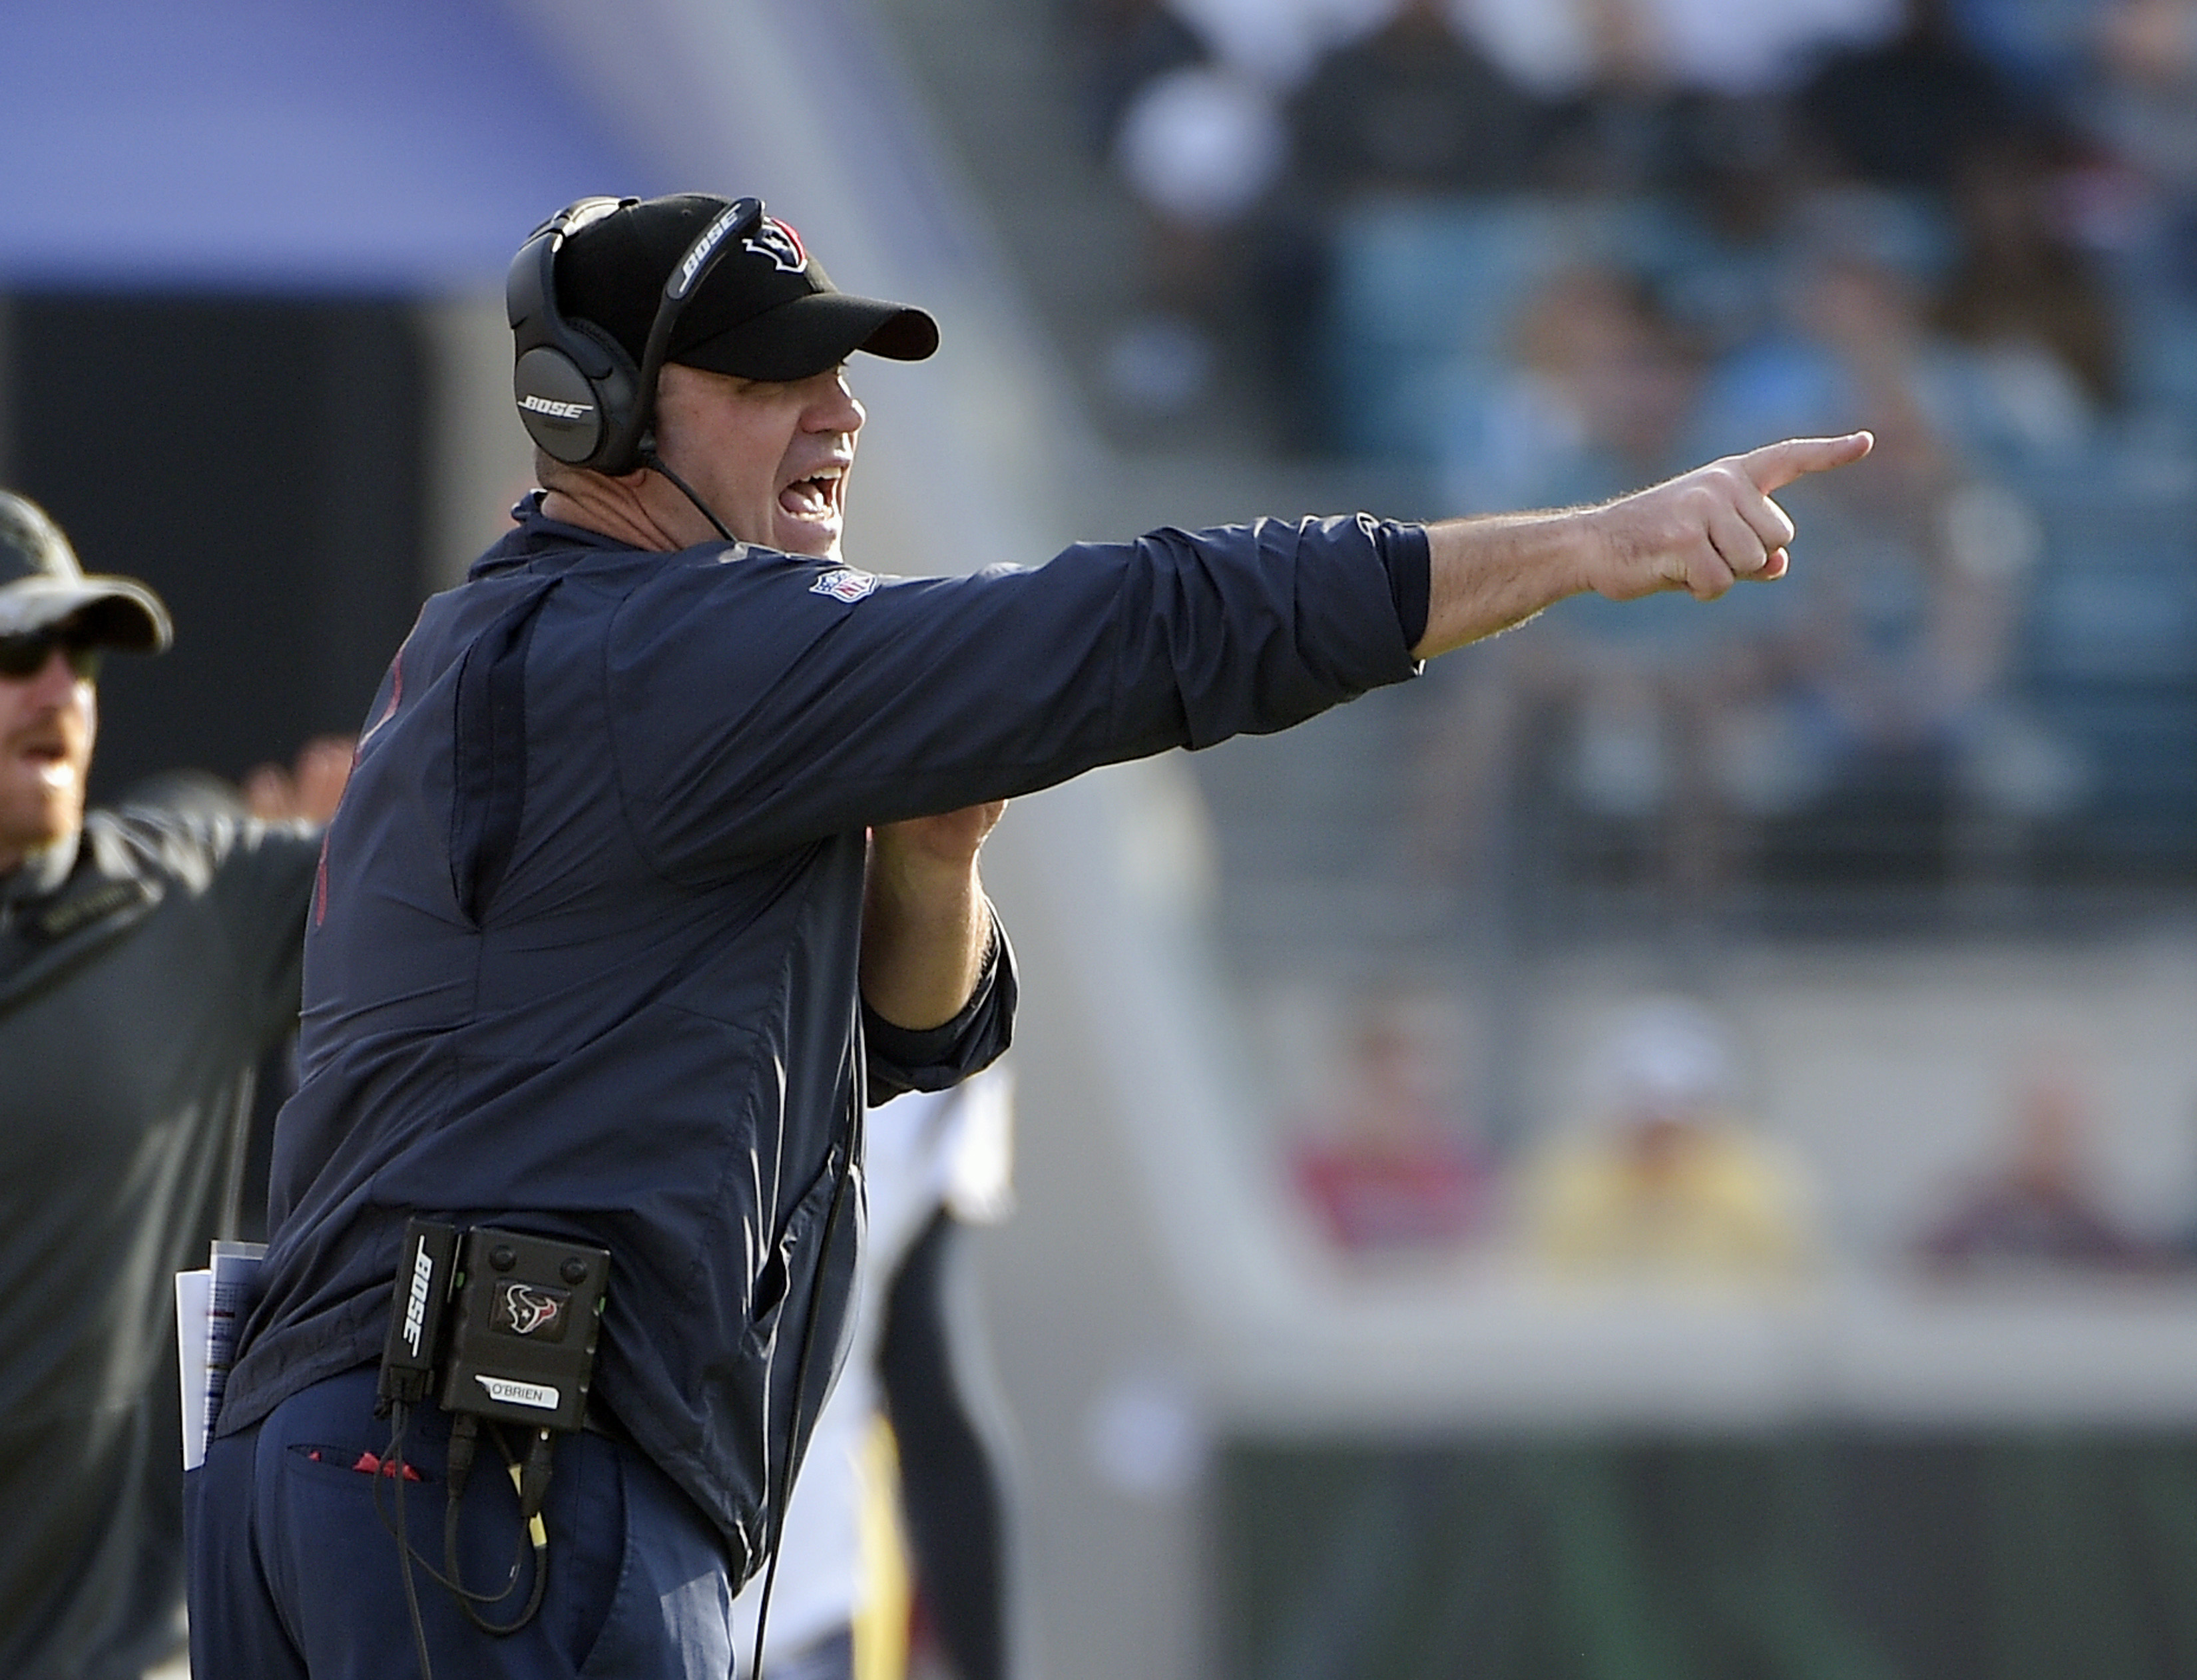 Houston Texans head coach Bill O'Brien directs players on the field during the second half of an NFL football game against the Jacksonville Jaguars in Jacksonville, Fla., Sunday, Nov. 13, 2016. (AP Photo/Phelan M. Ebenhack)